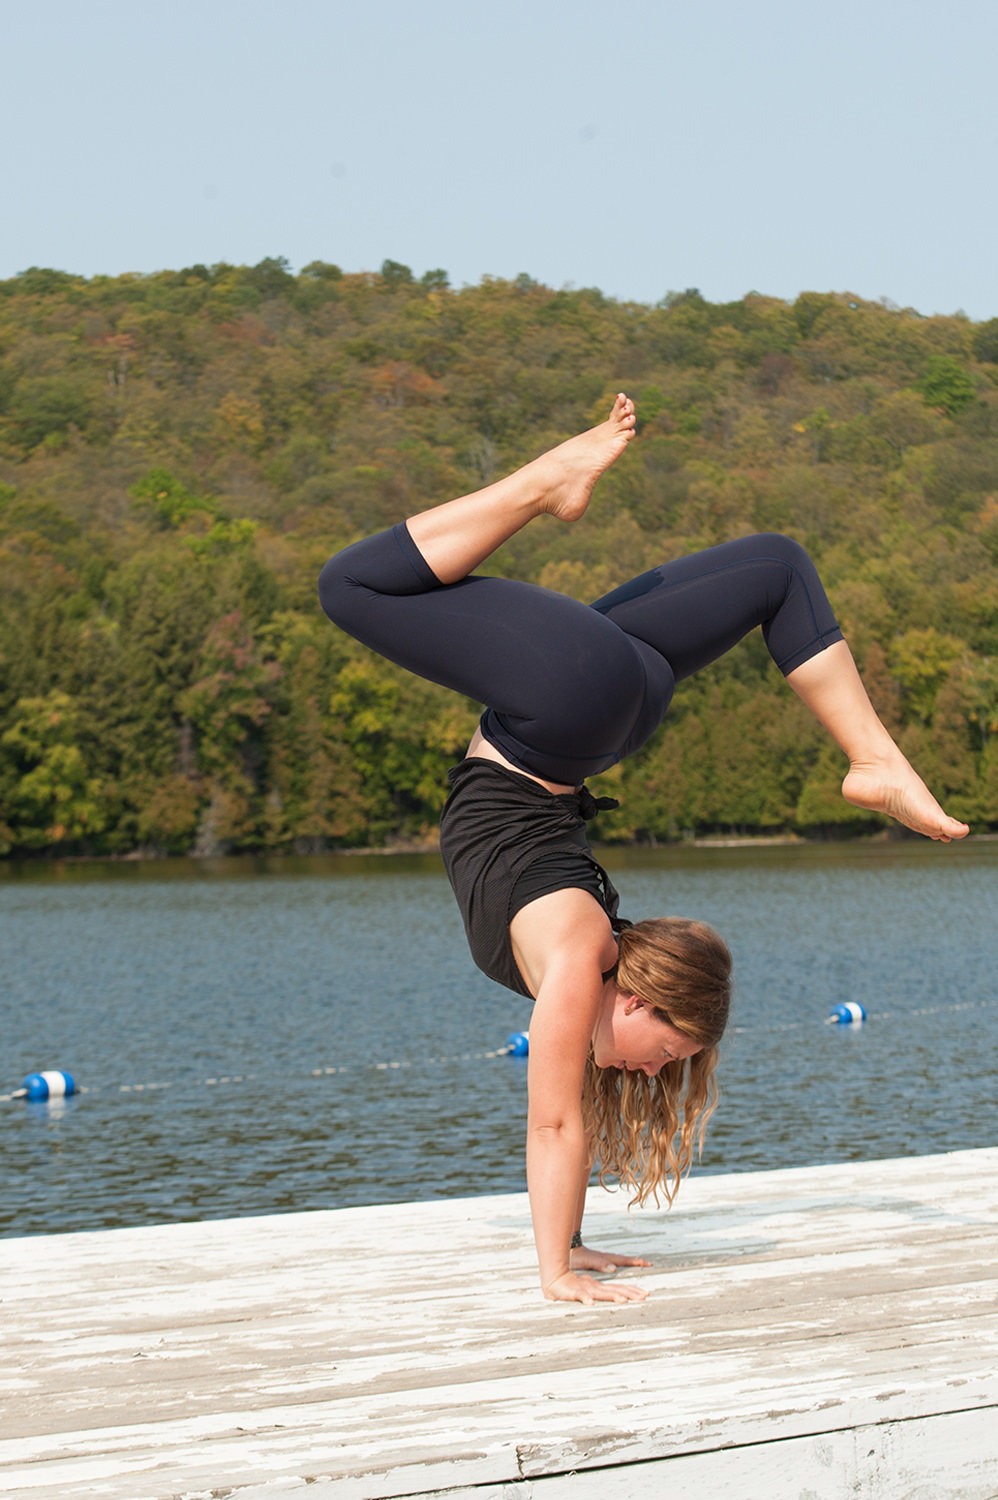 yoga woman doing handstand variation on dock